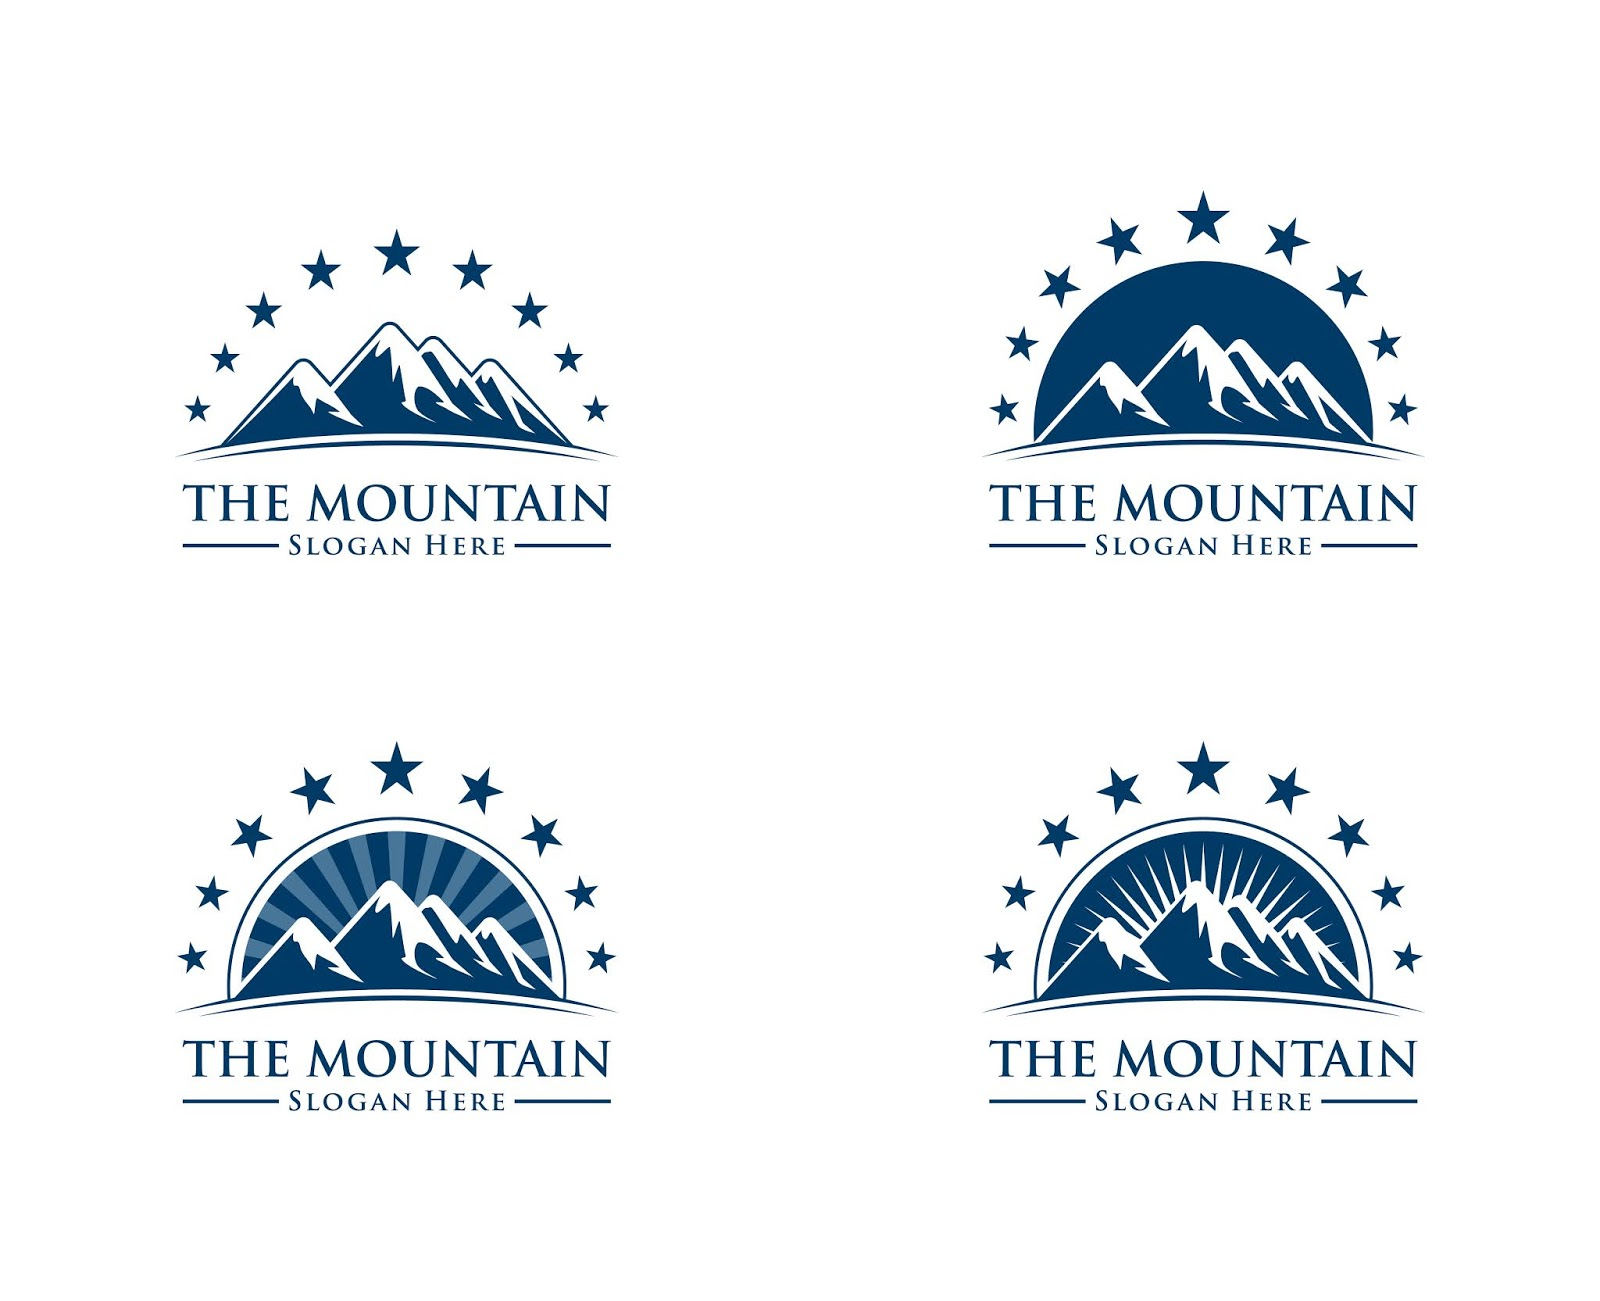 Mountain Logo With Sun Star Concept Free Download Vector CDR, AI, EPS and PNG Formats